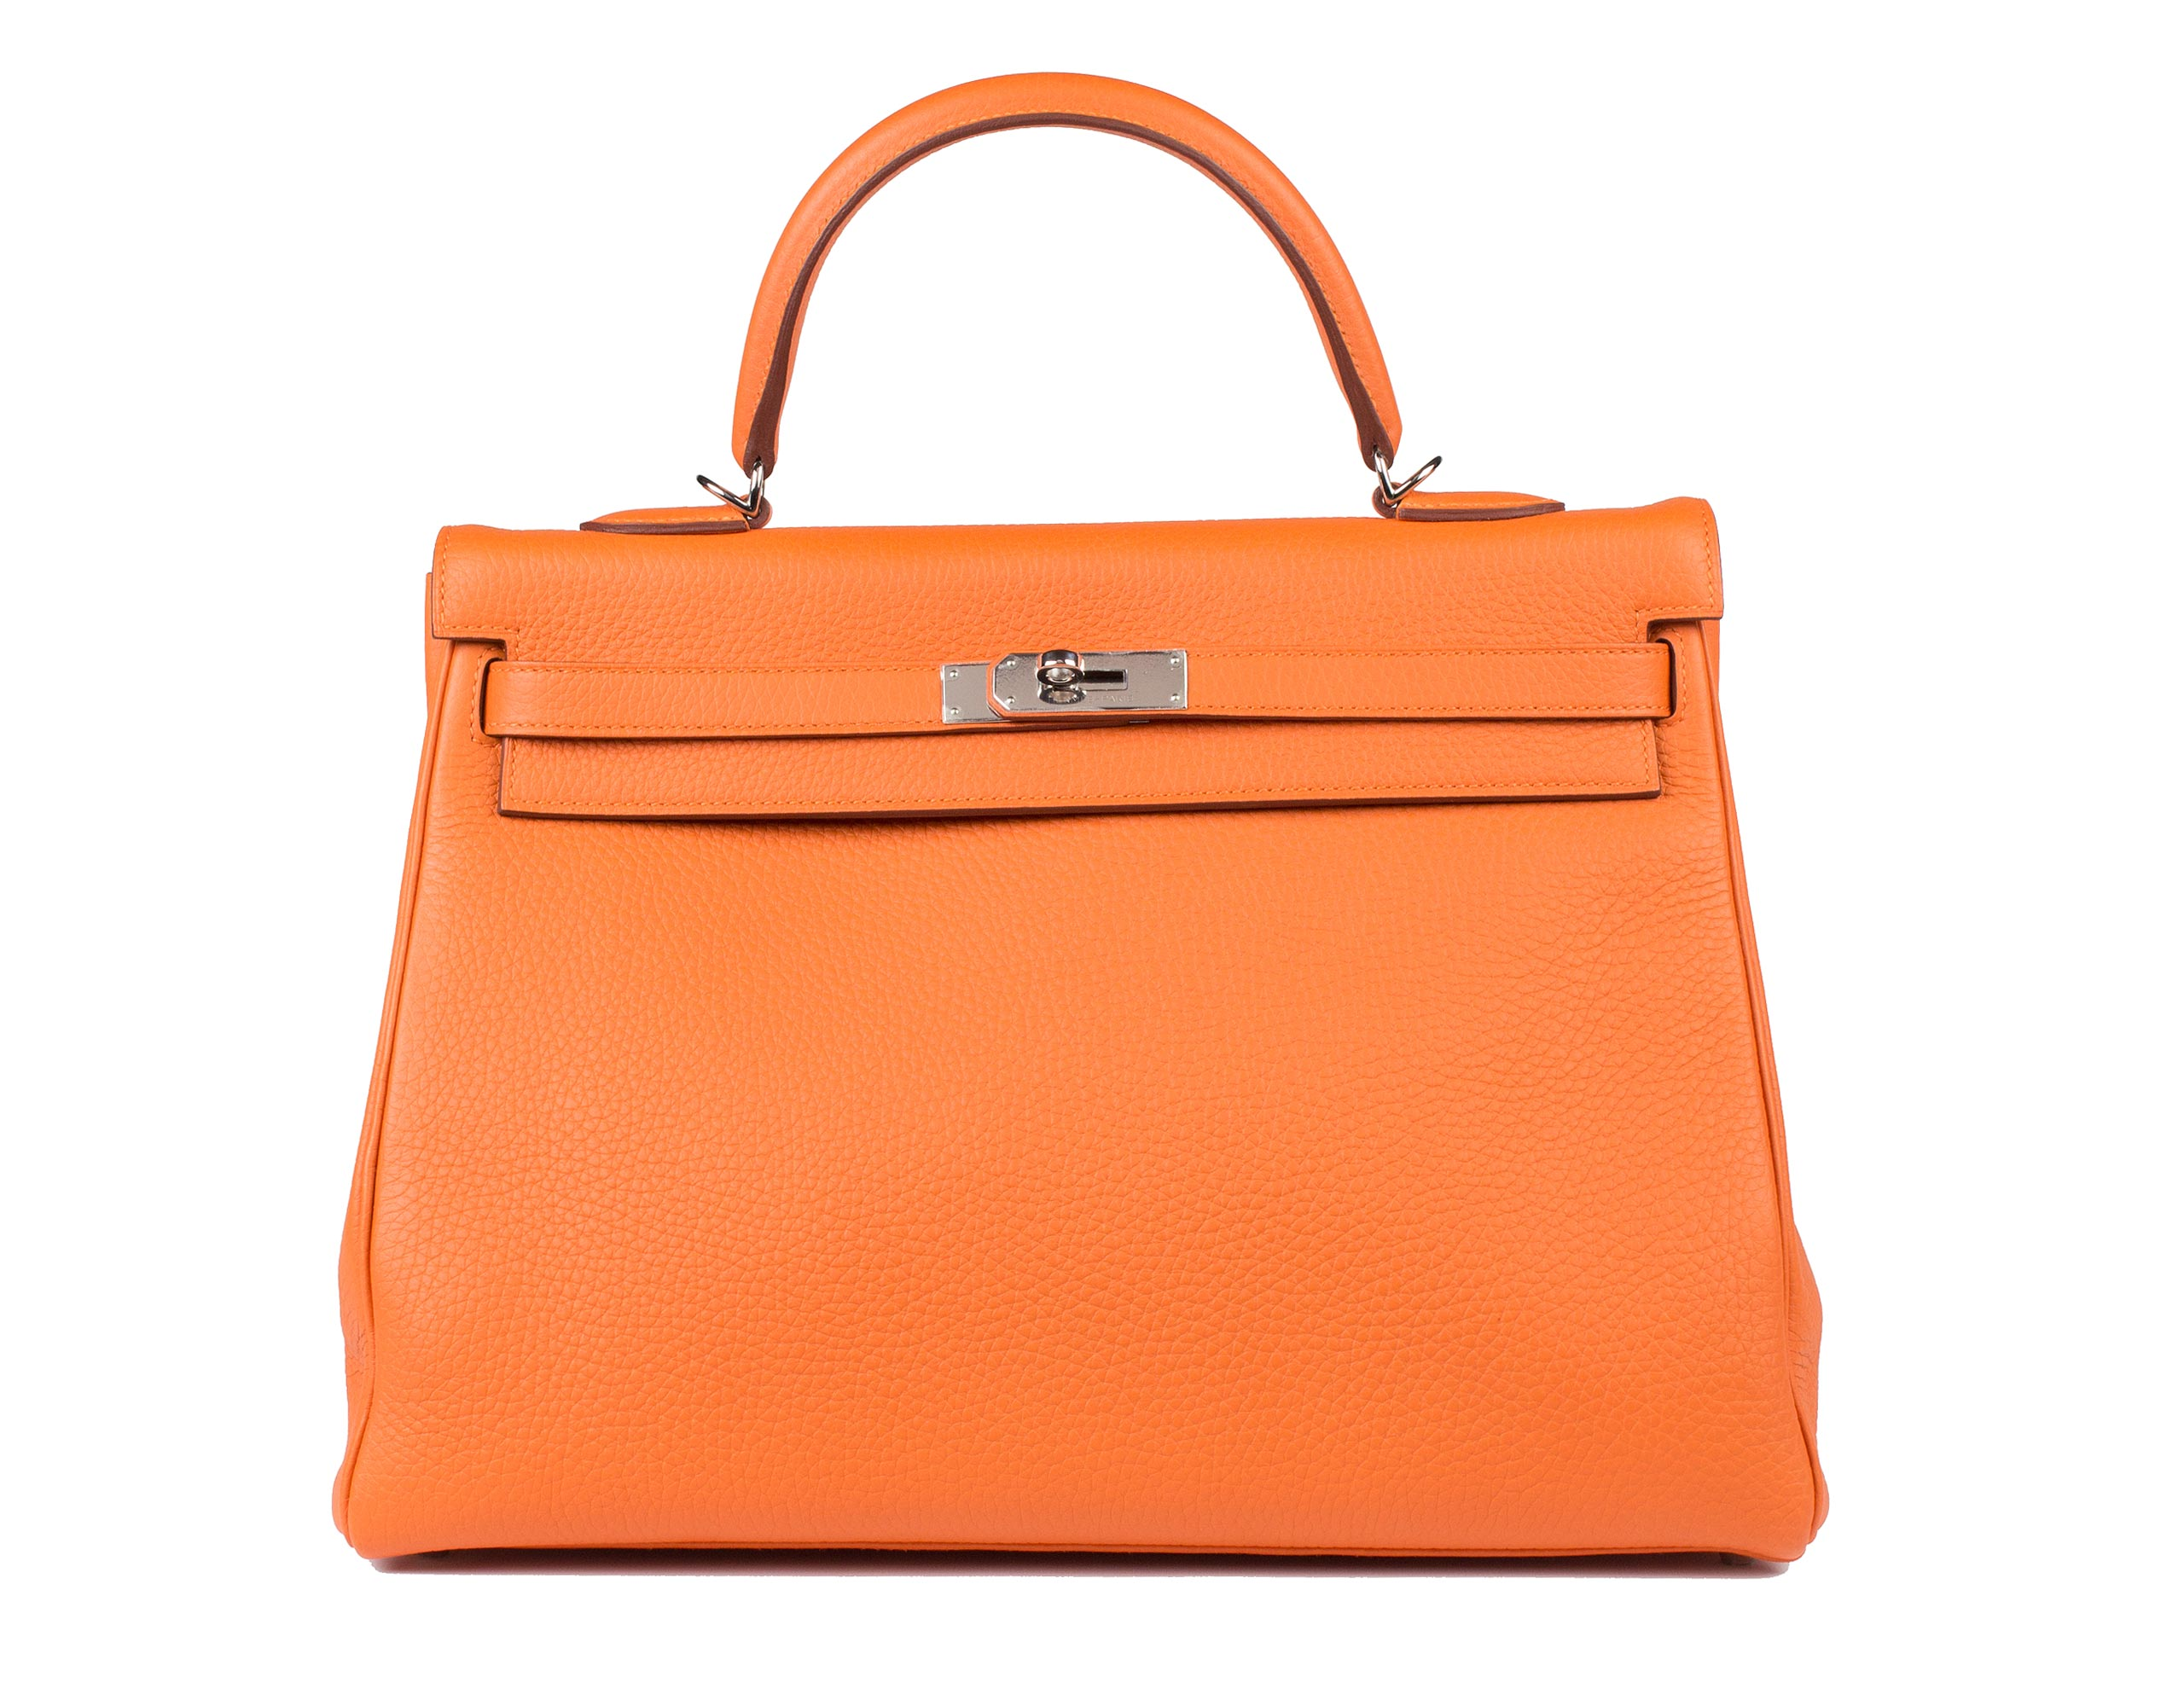 Hermes Bag Kelly Orange Clemence 35cm K73 Front